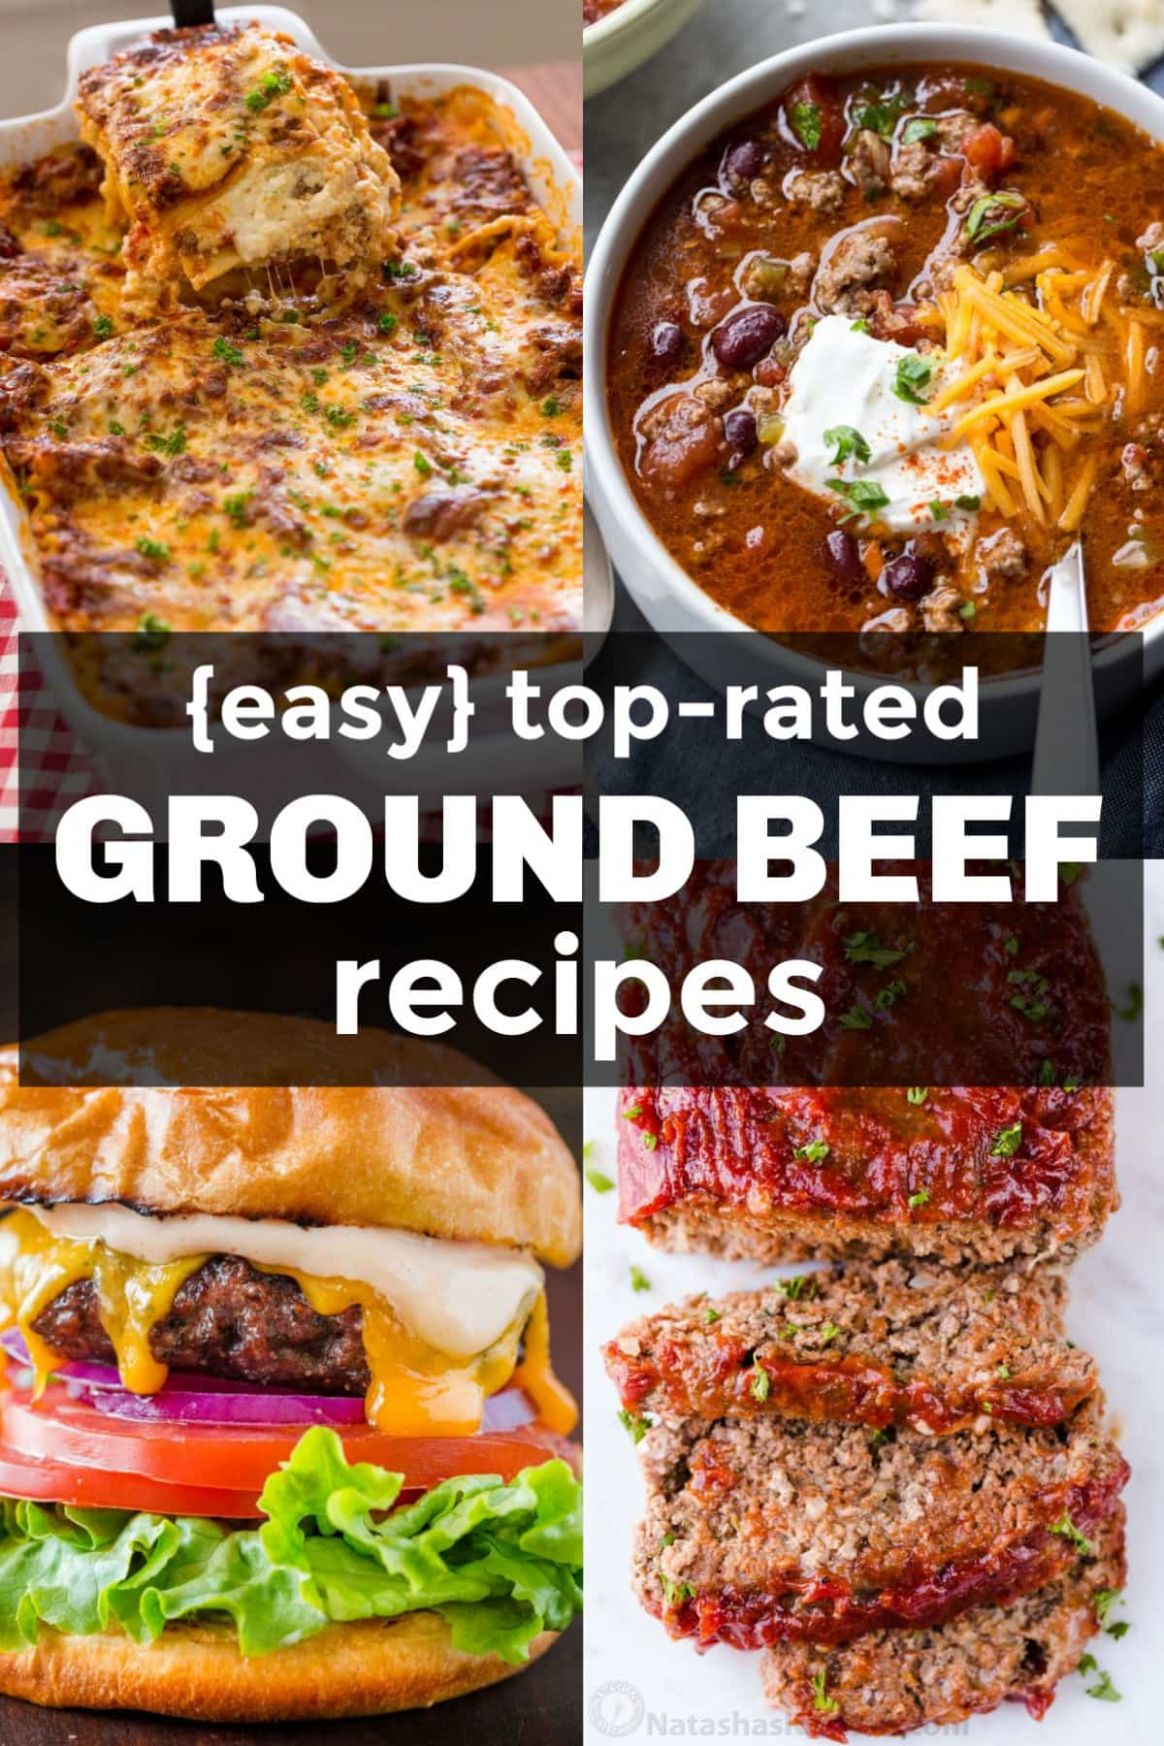 How to Cook Ground Beef for Ground Beef Recipes - Beef Recipes Quick